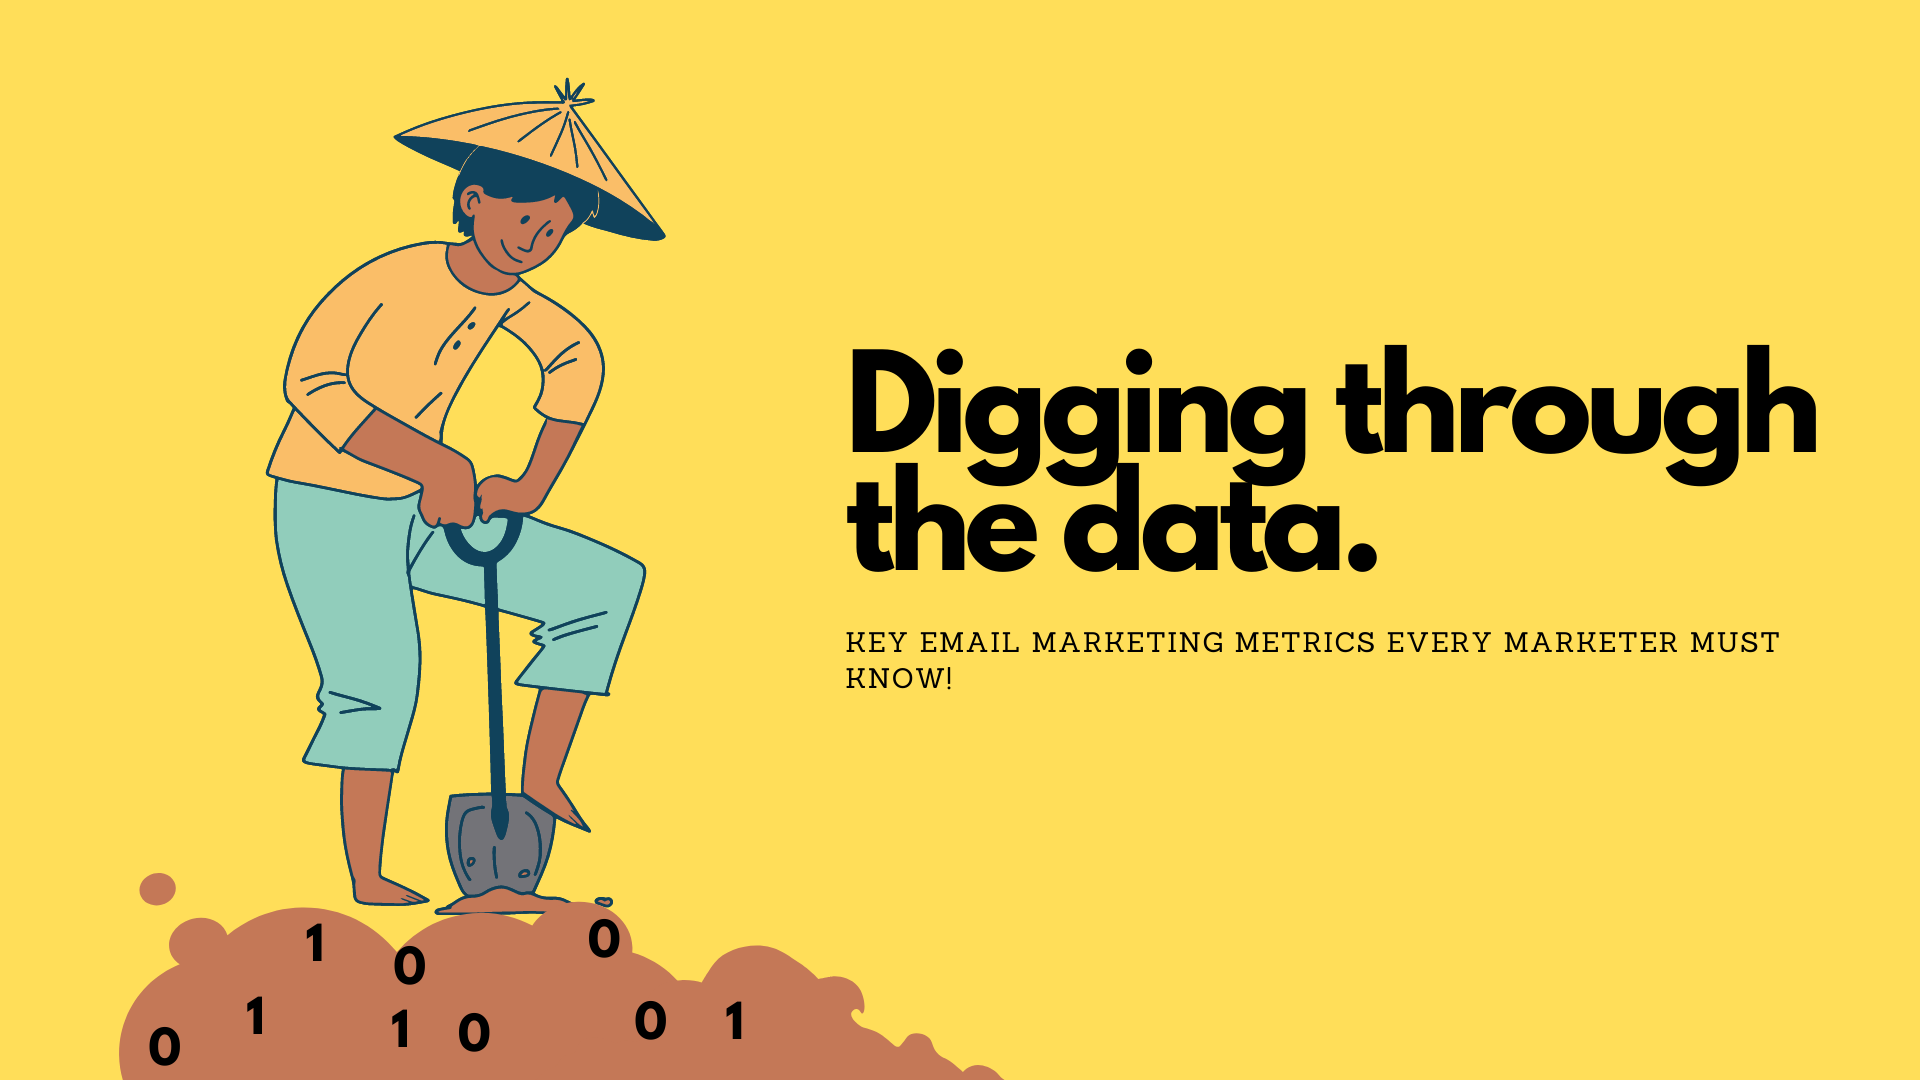 Digging through the data: Key Email Marketing Metrics Every Marketer Must Know!